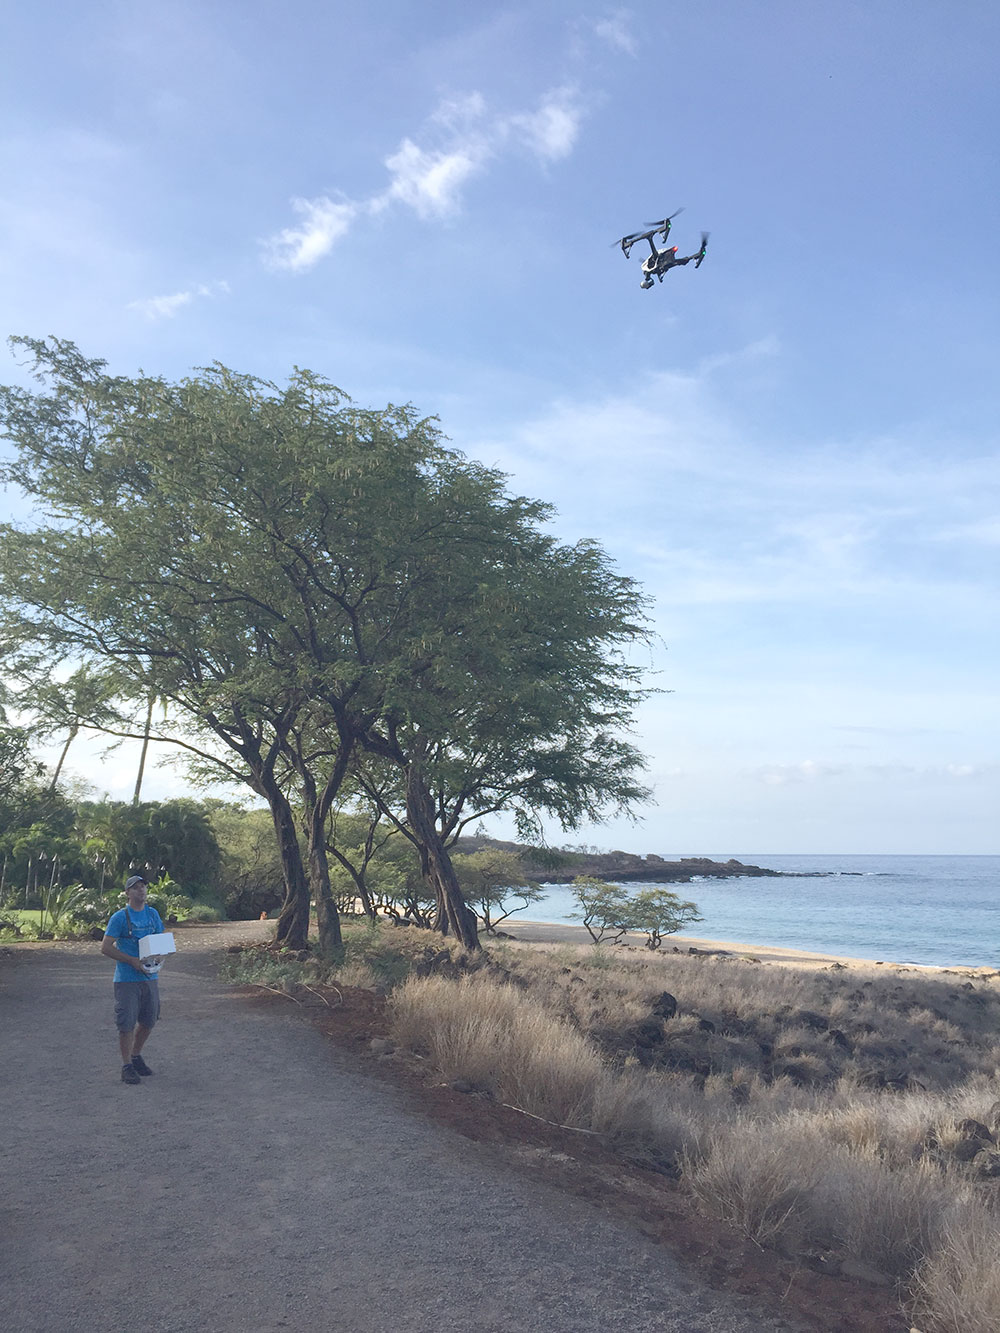 ian_and_drone-Lanai_edited.jpg